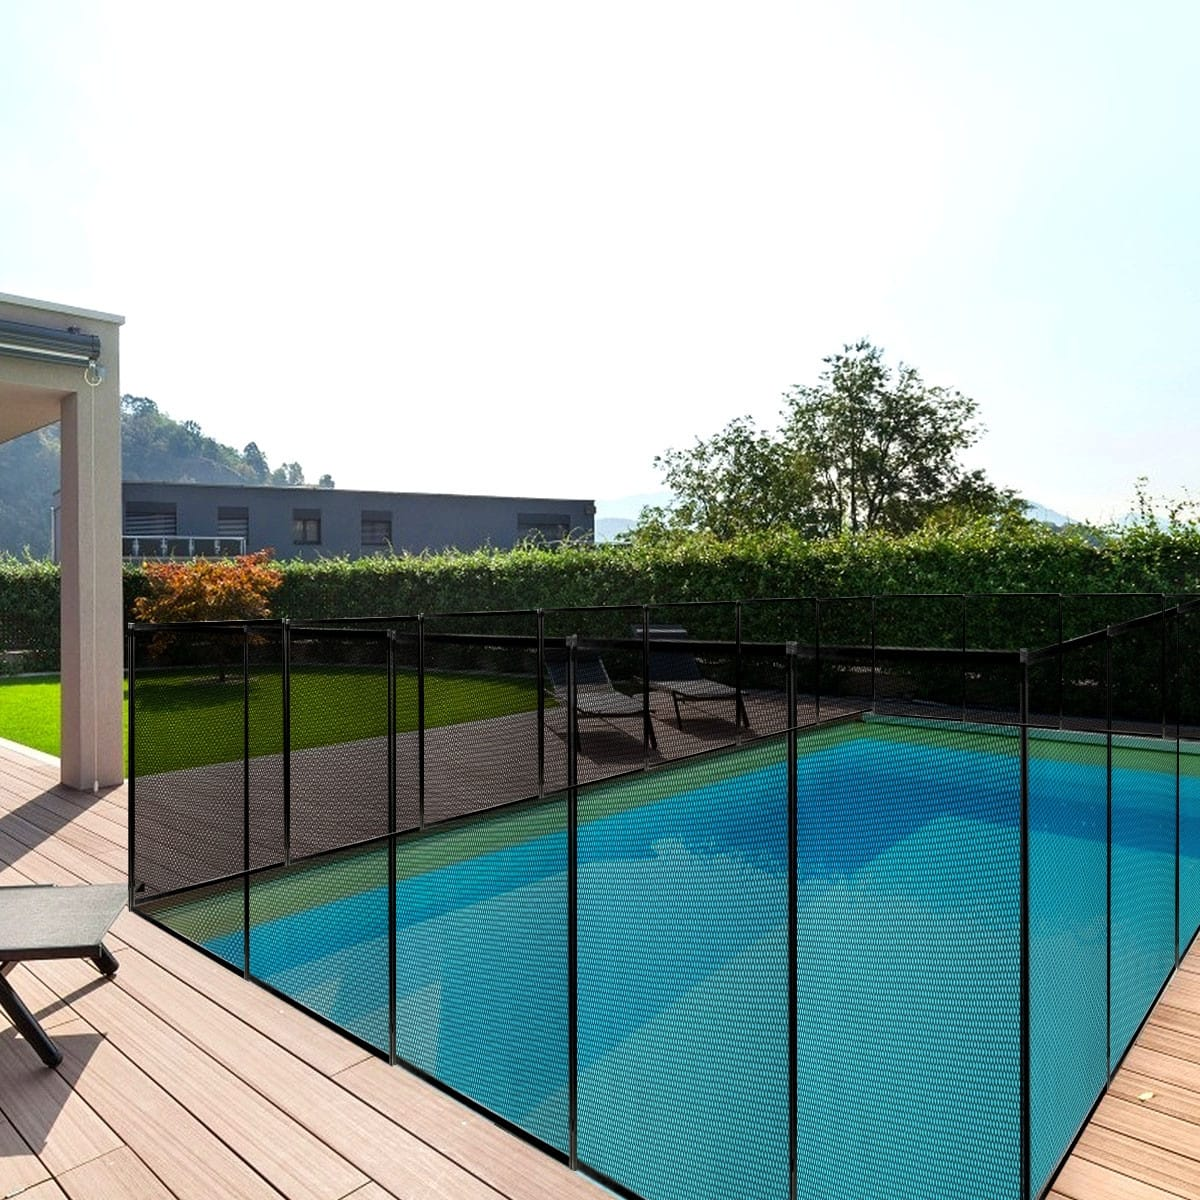 4' x 12' Swimming Pool Fence Garden Fence Child Barrier - $75.00 + Free Shipping